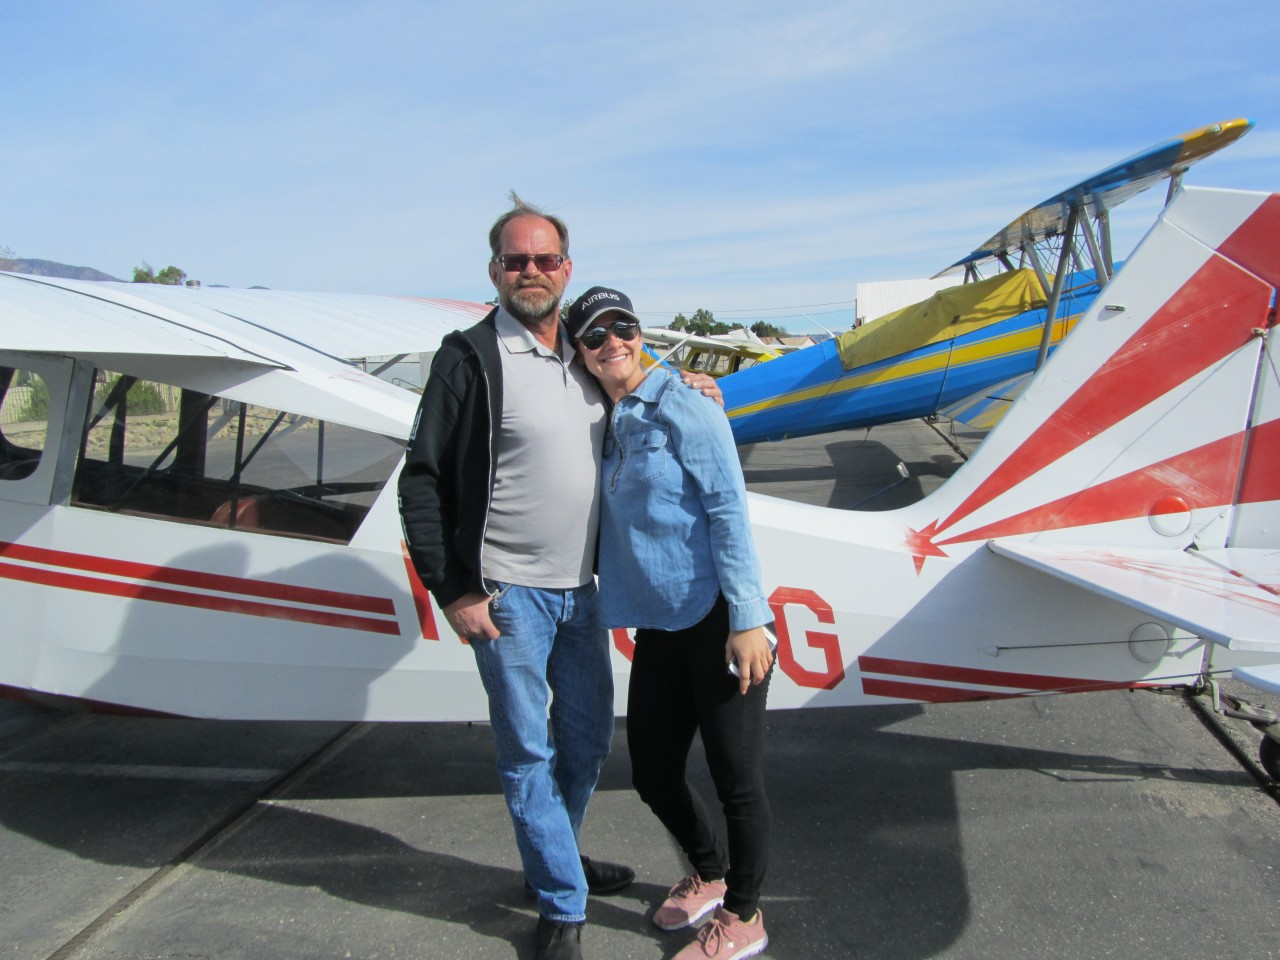 Tailwheel Endorsement - Dianne Dollar!